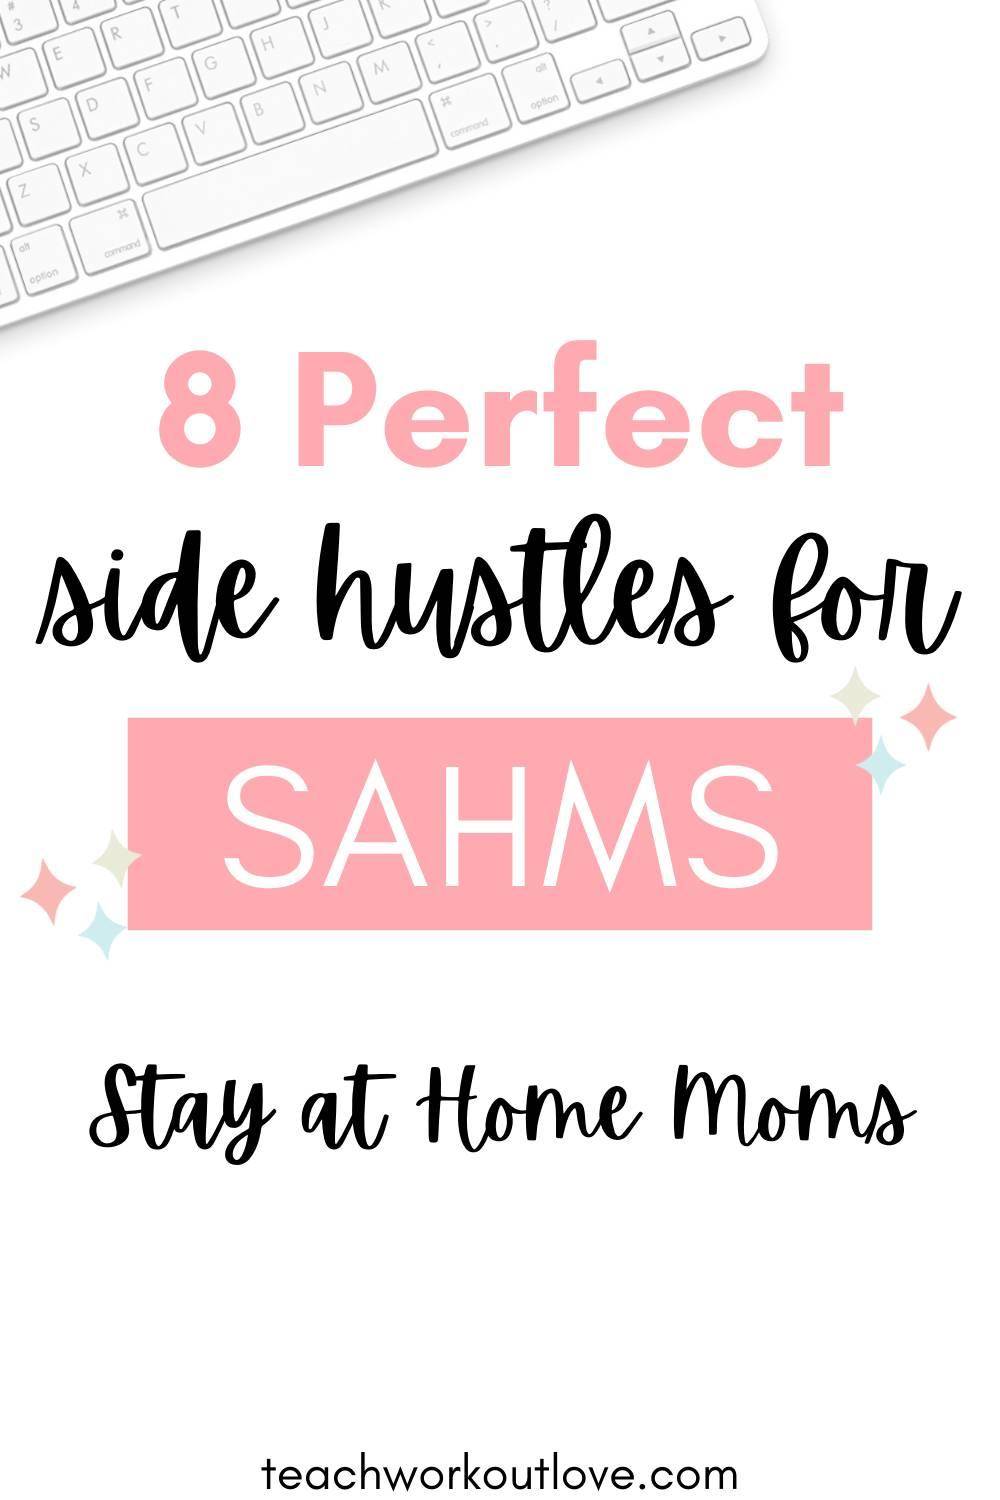 Looking to make some extra money? Here's 8 great ideas for parents to do as a side hustle as an additional source of income.